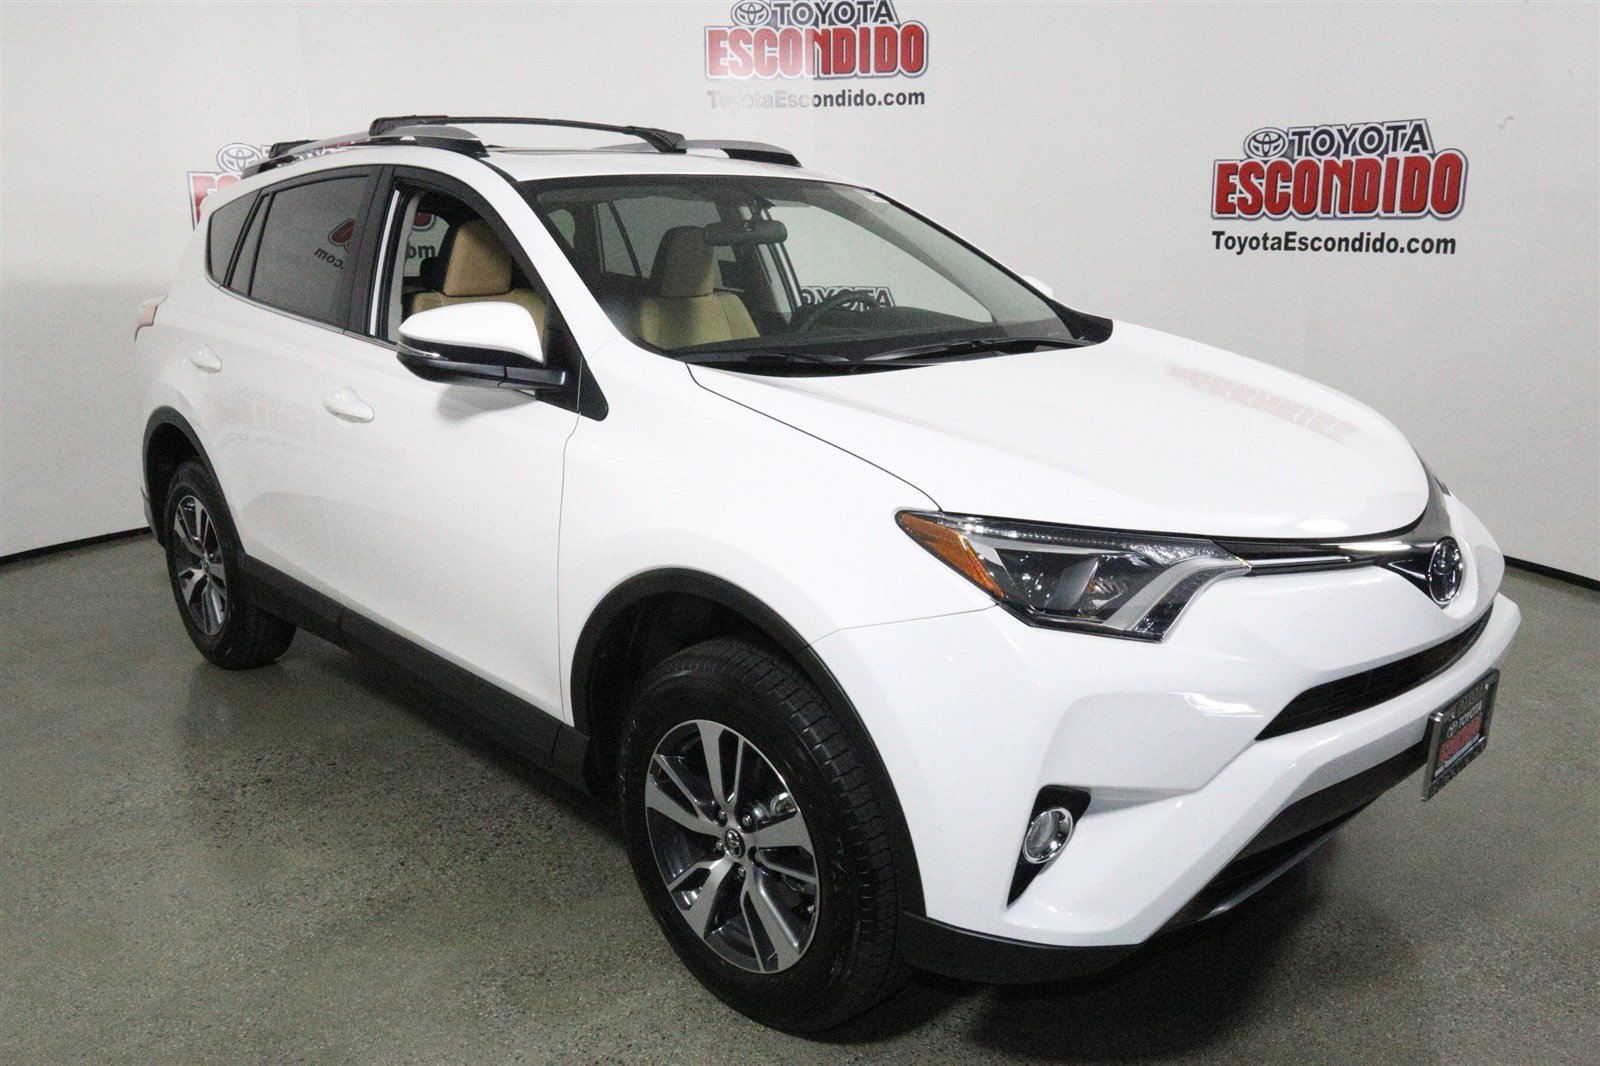 new 2017 toyota rav4 xle sport utility in escondido 1014002 toyota of escondido. Black Bedroom Furniture Sets. Home Design Ideas